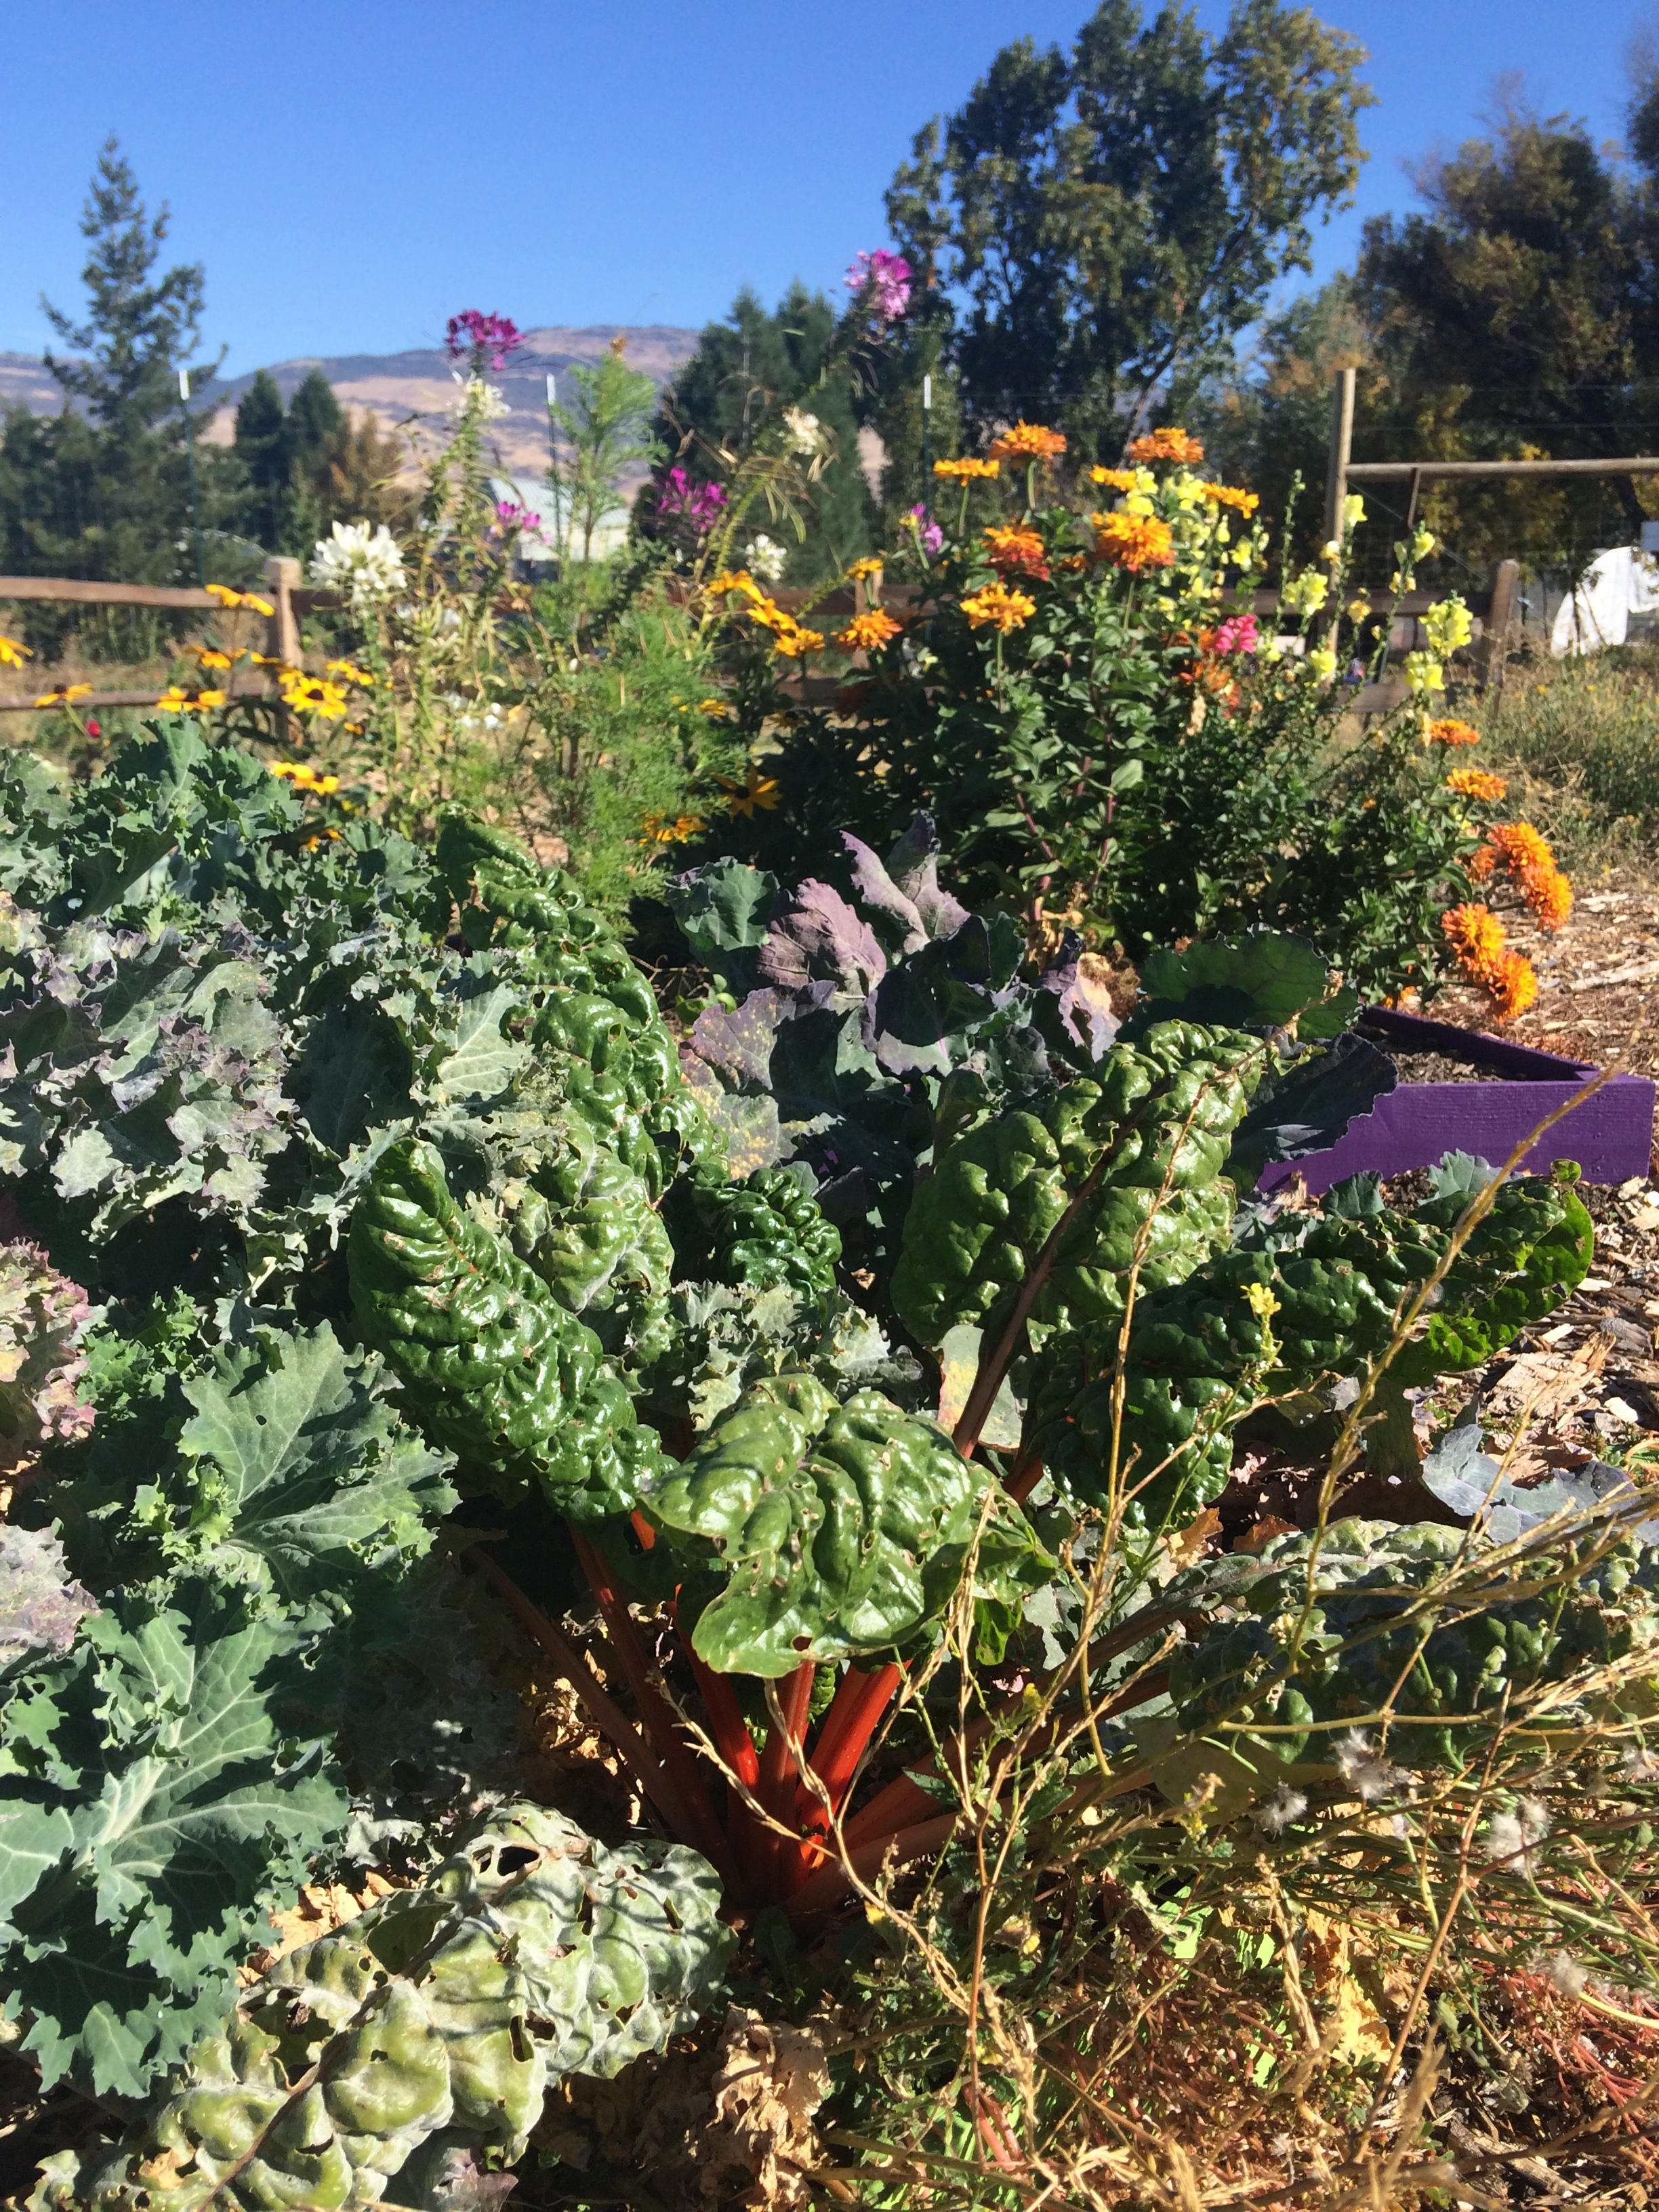 The farm has lots of fresh produce, ready to be chowed down on!